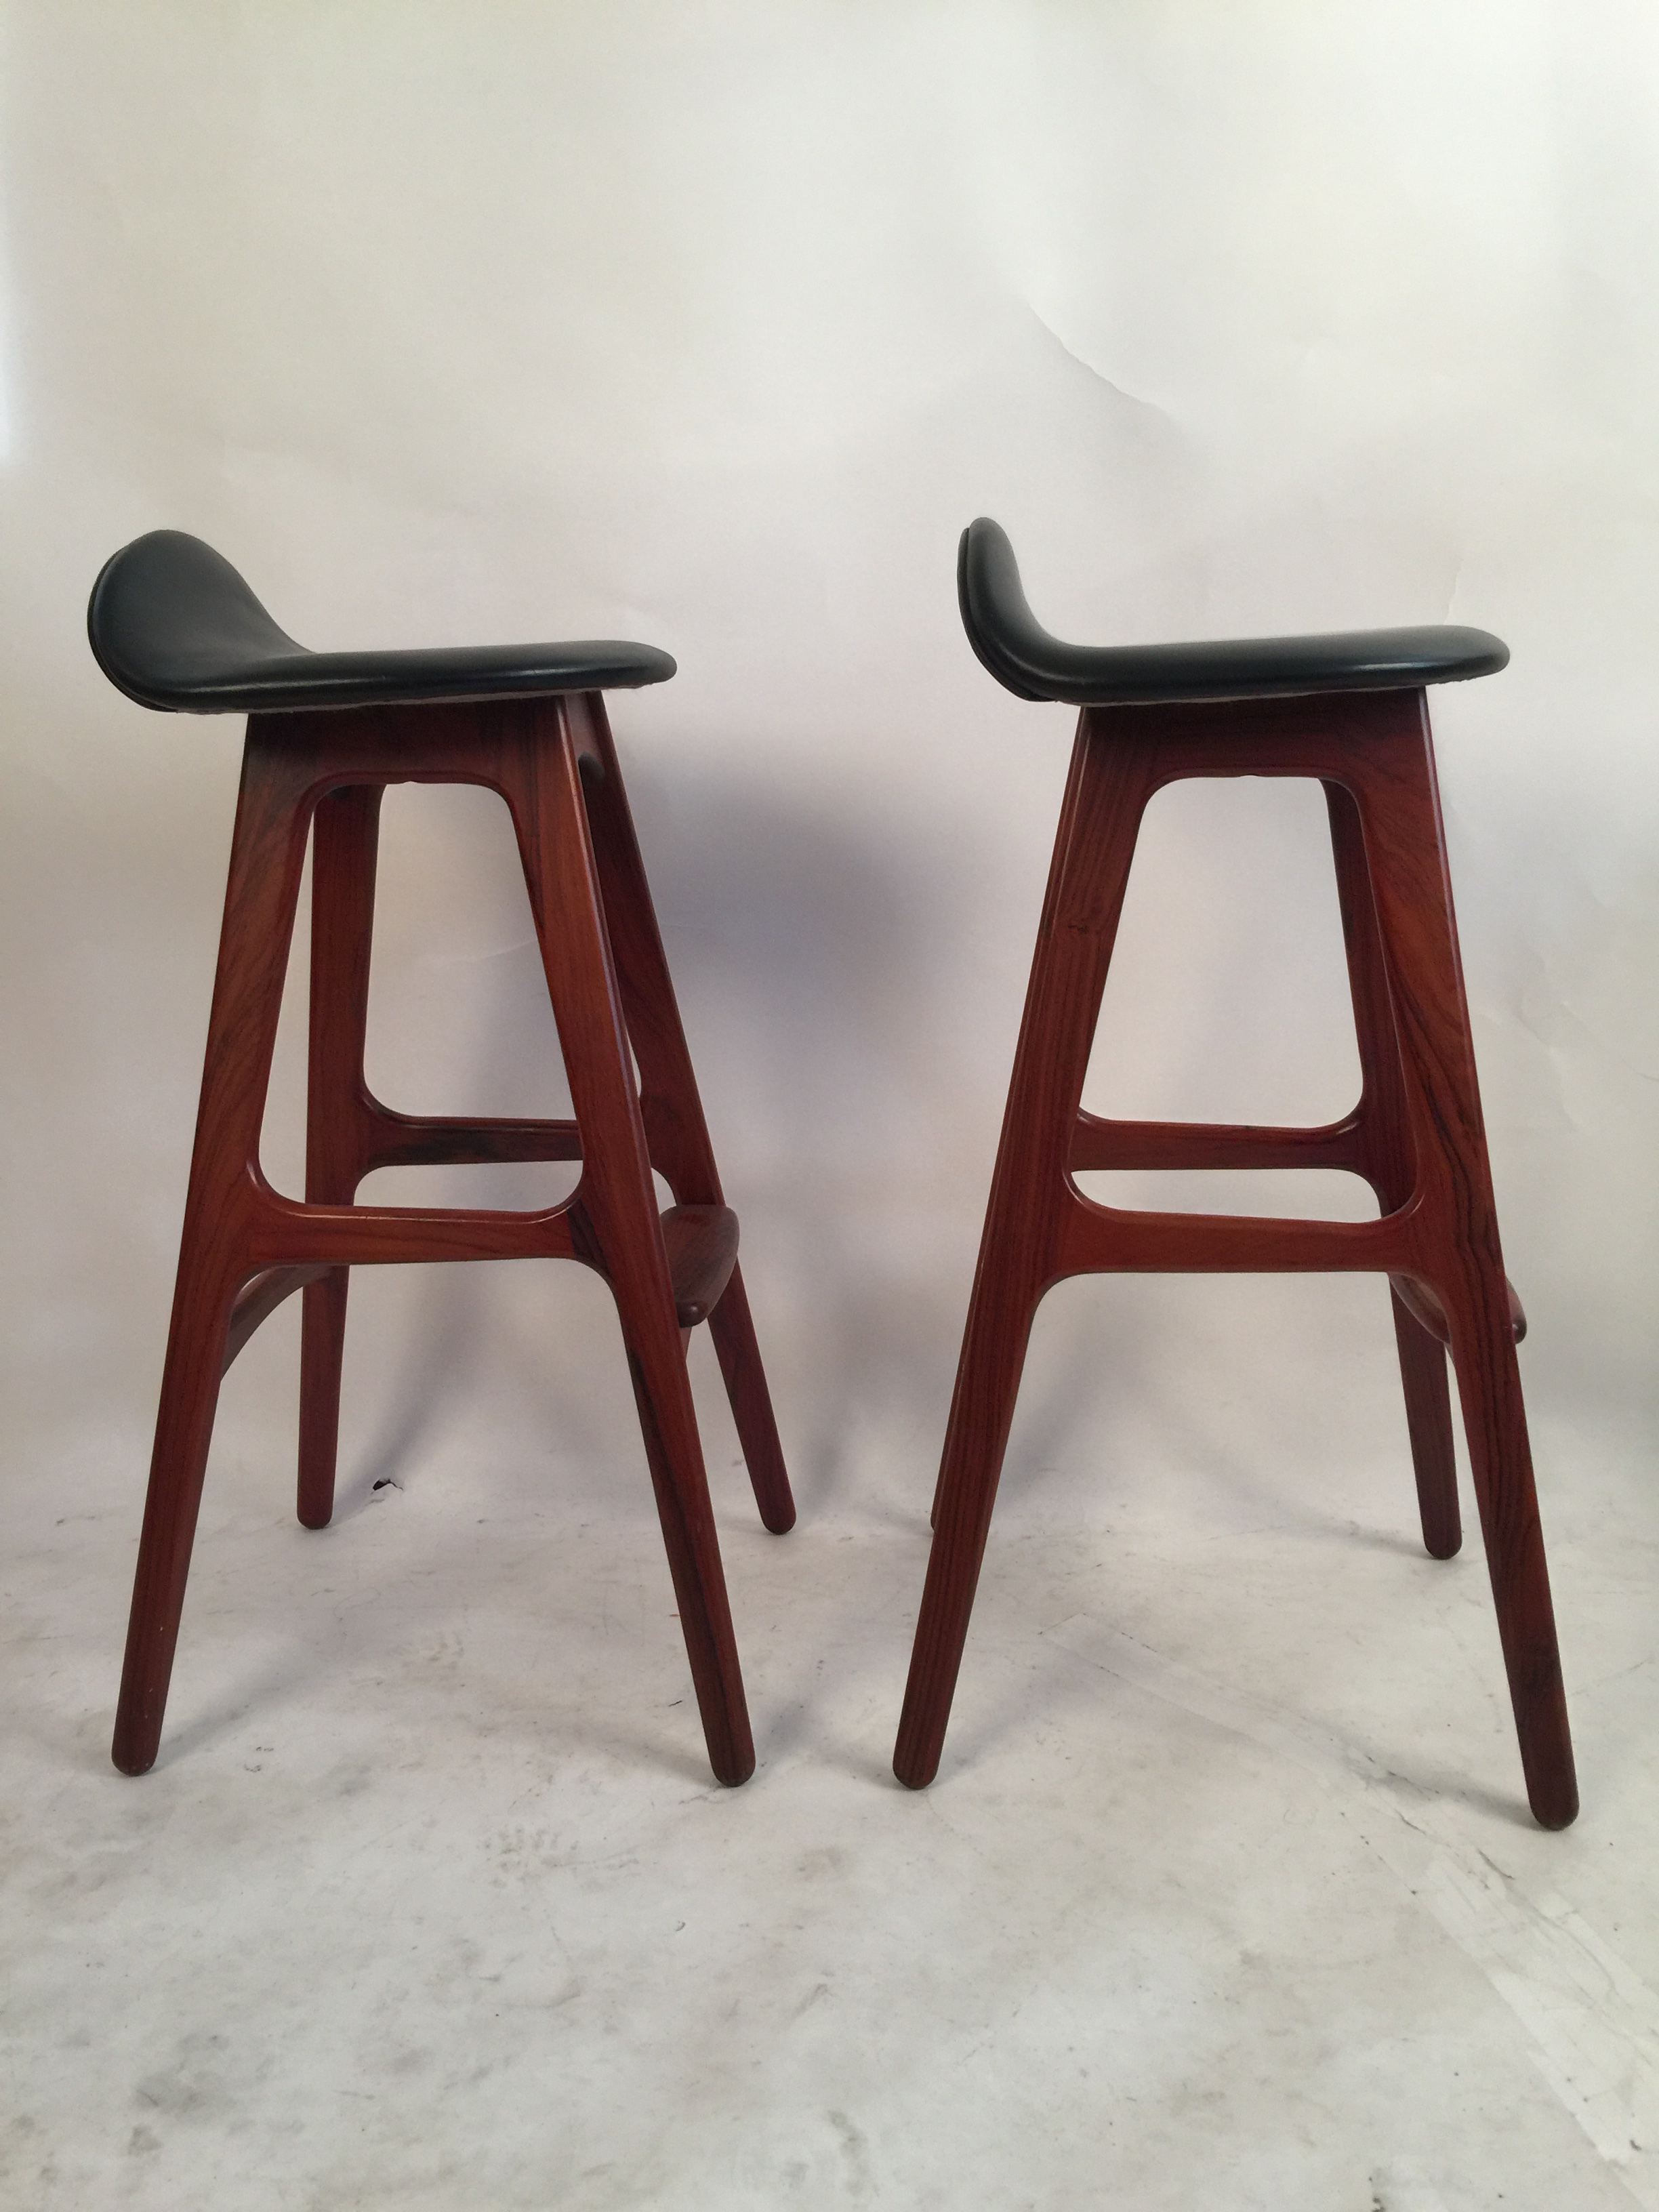 Erik Buck pair of black leather and rosewood bar stools_model 0D61  2.JPG